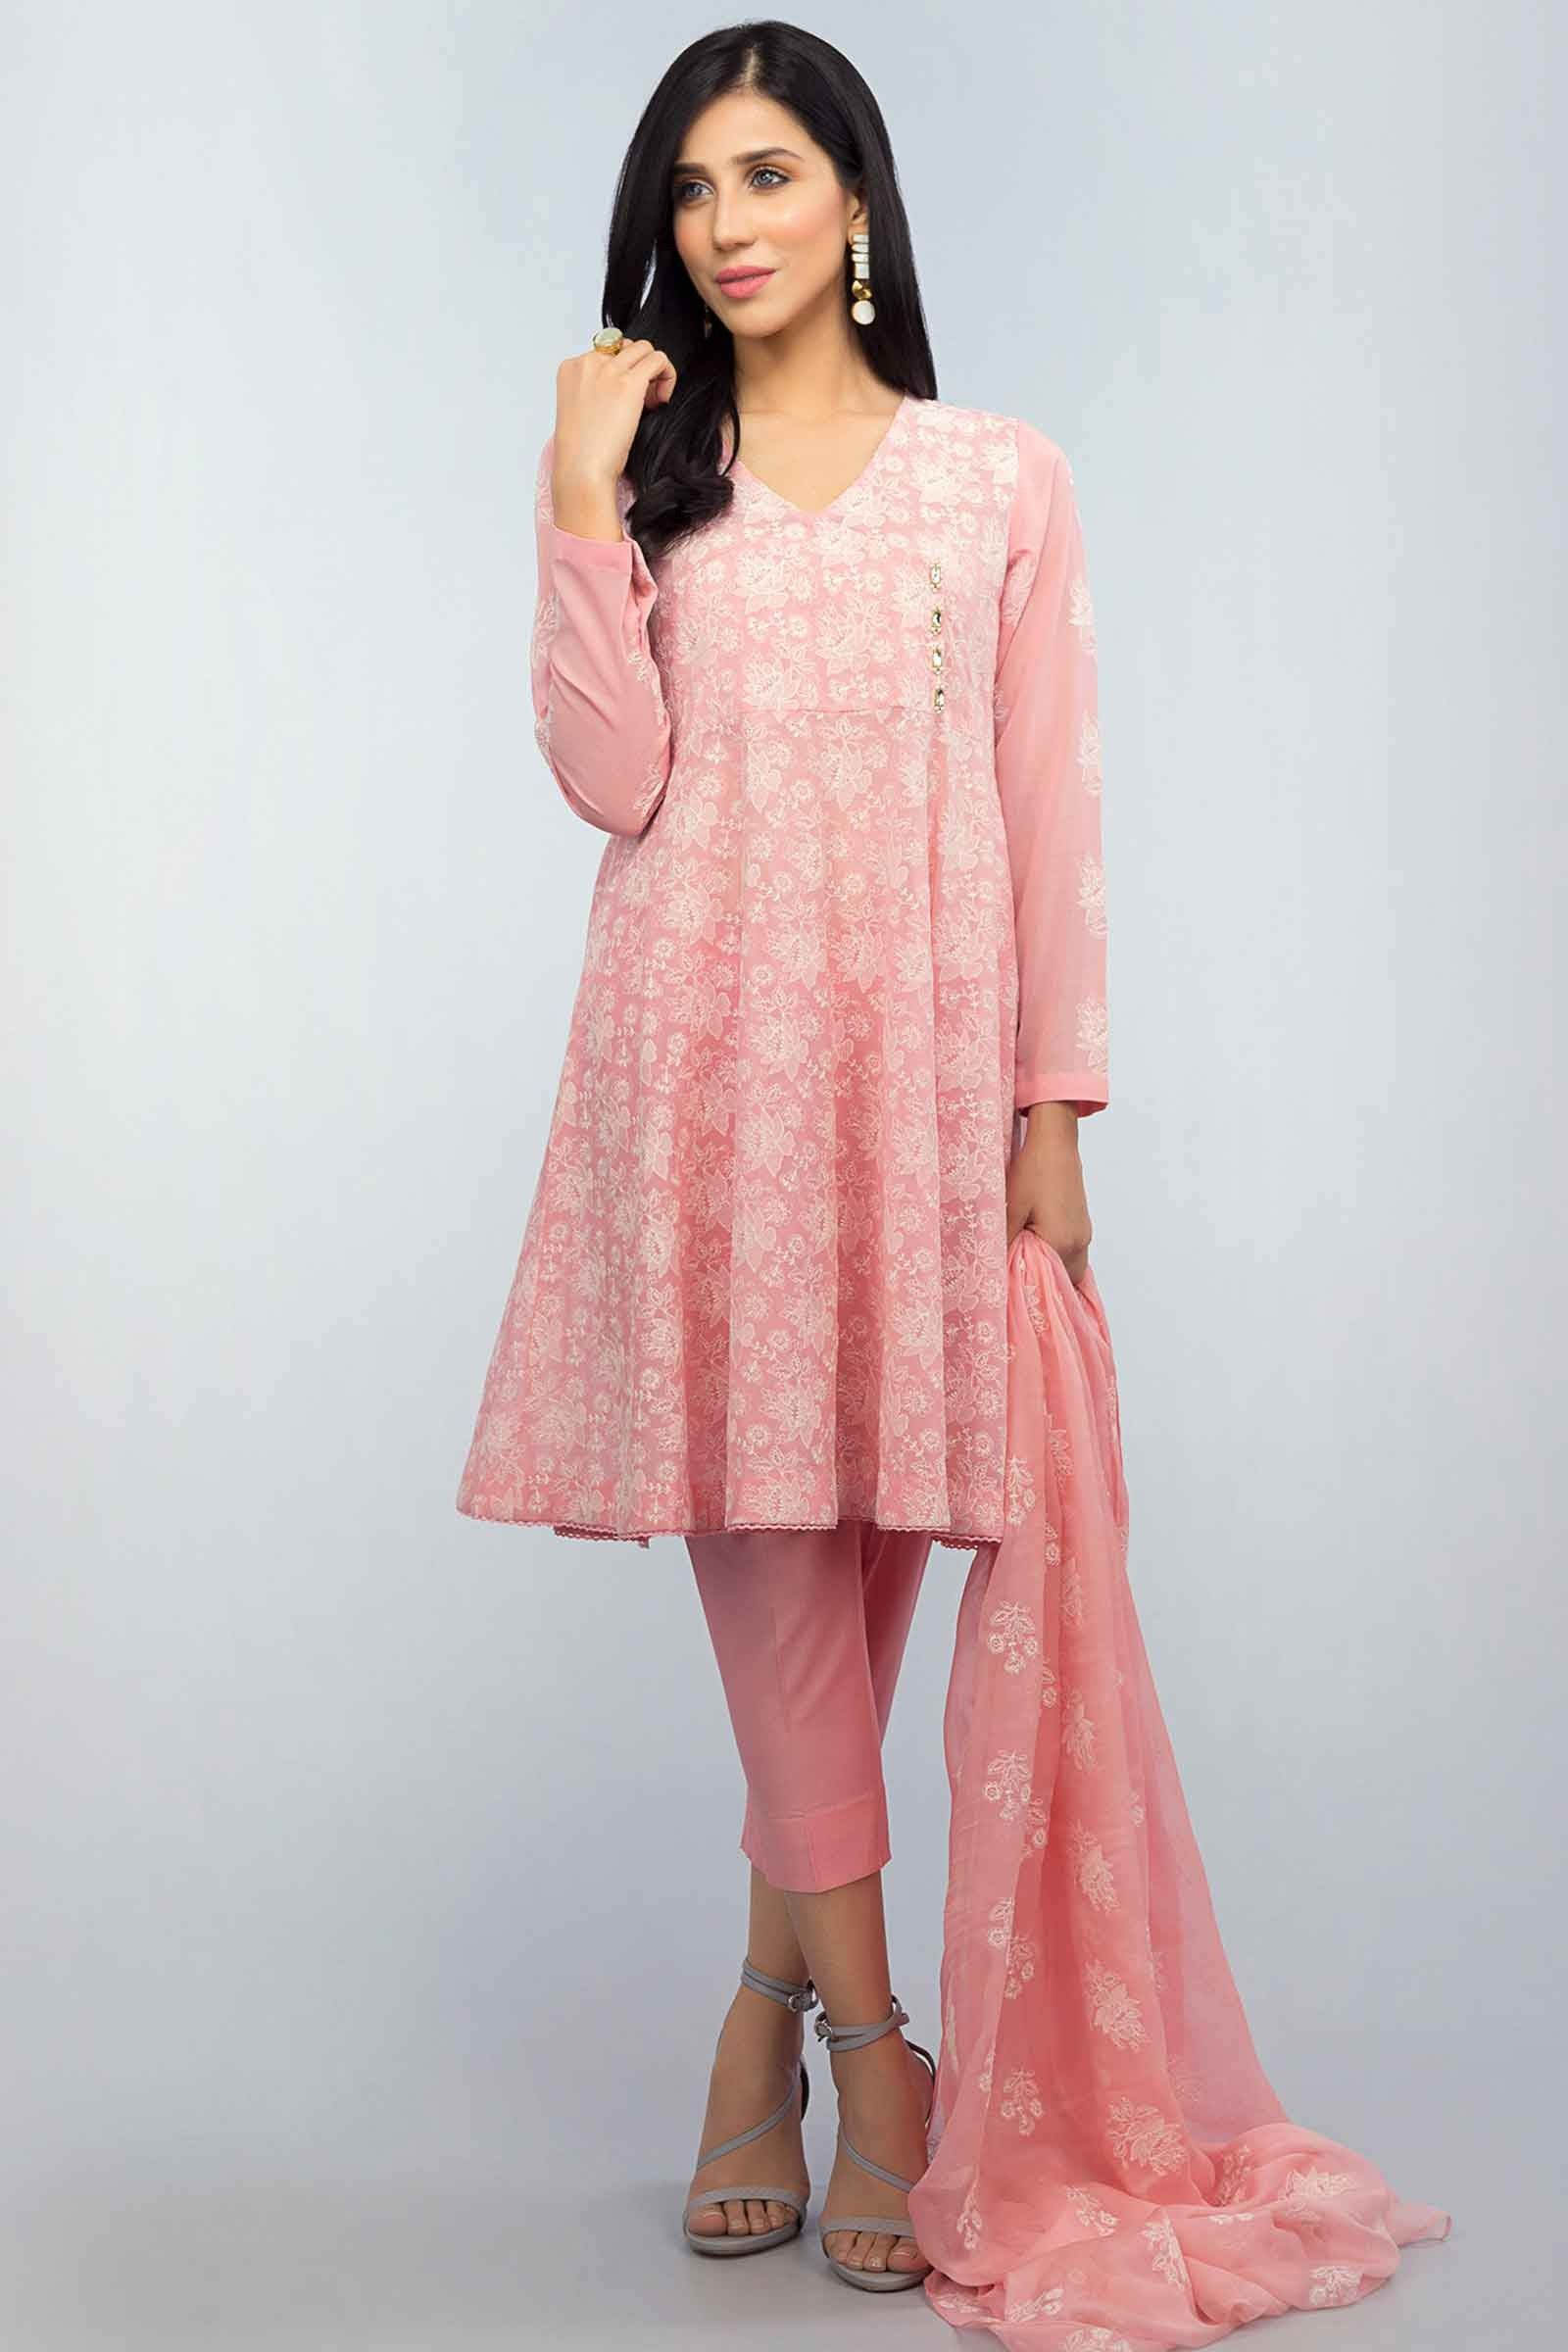 0ea26a699808 Buy Online Pink Lawn Suit at Bareeze Sale 2018 with Price